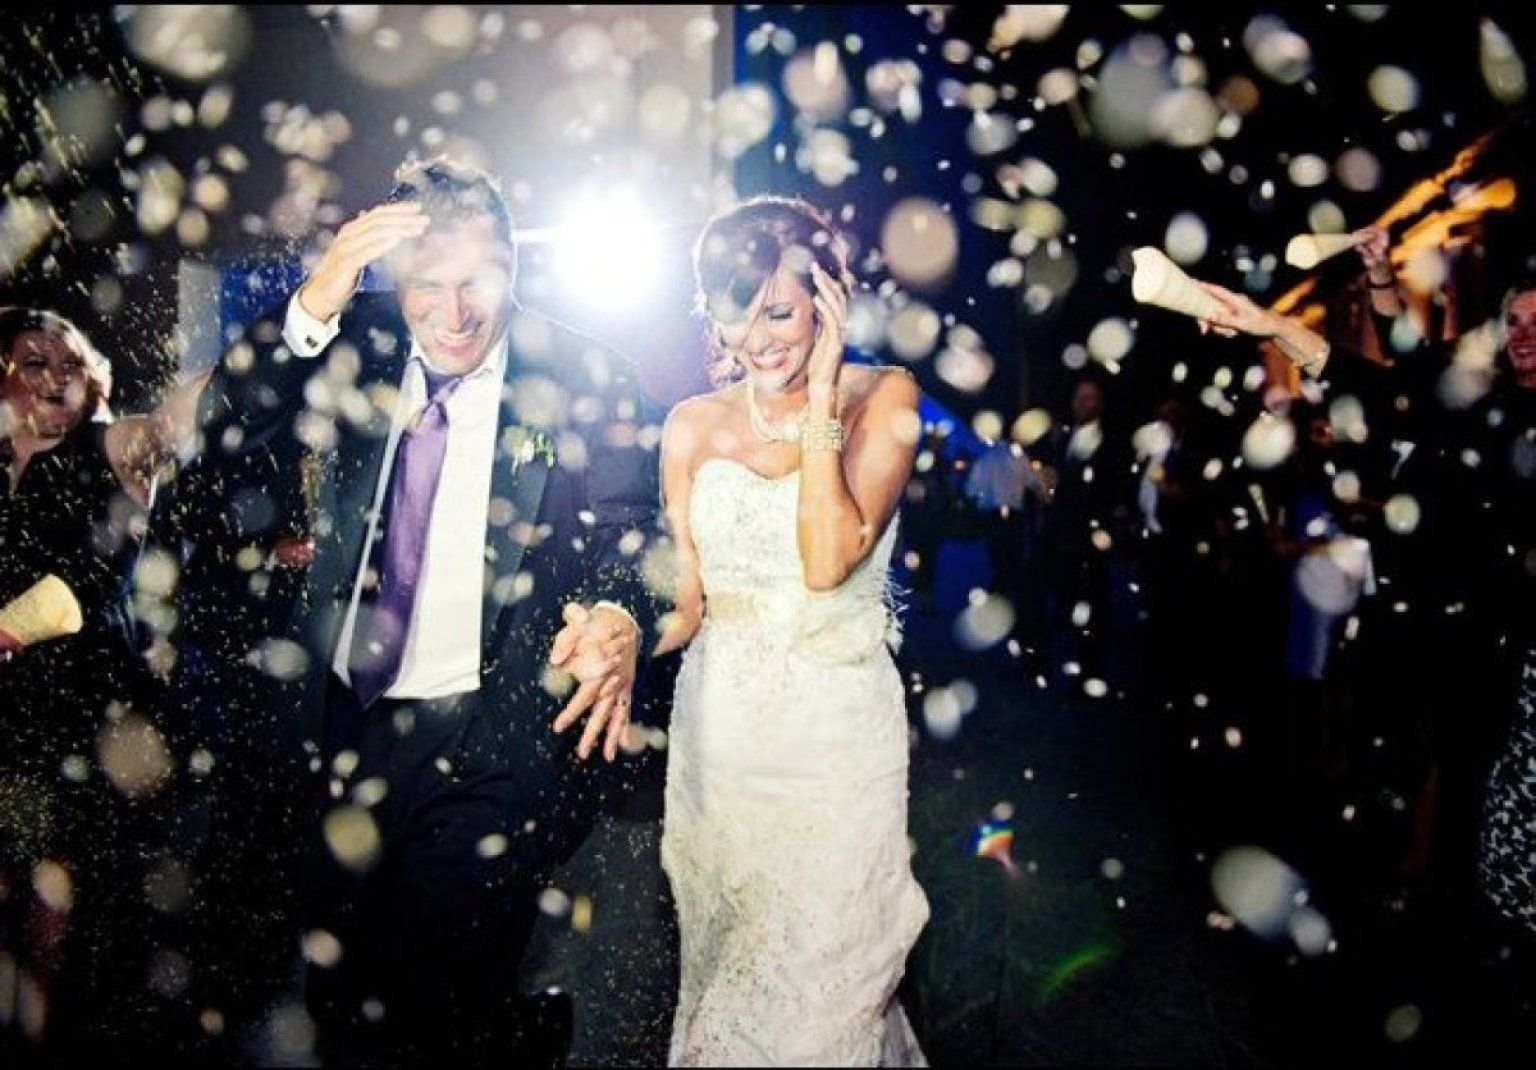 12 Cute Wedding Exit Toss Ideas You May Not Have Thought Of